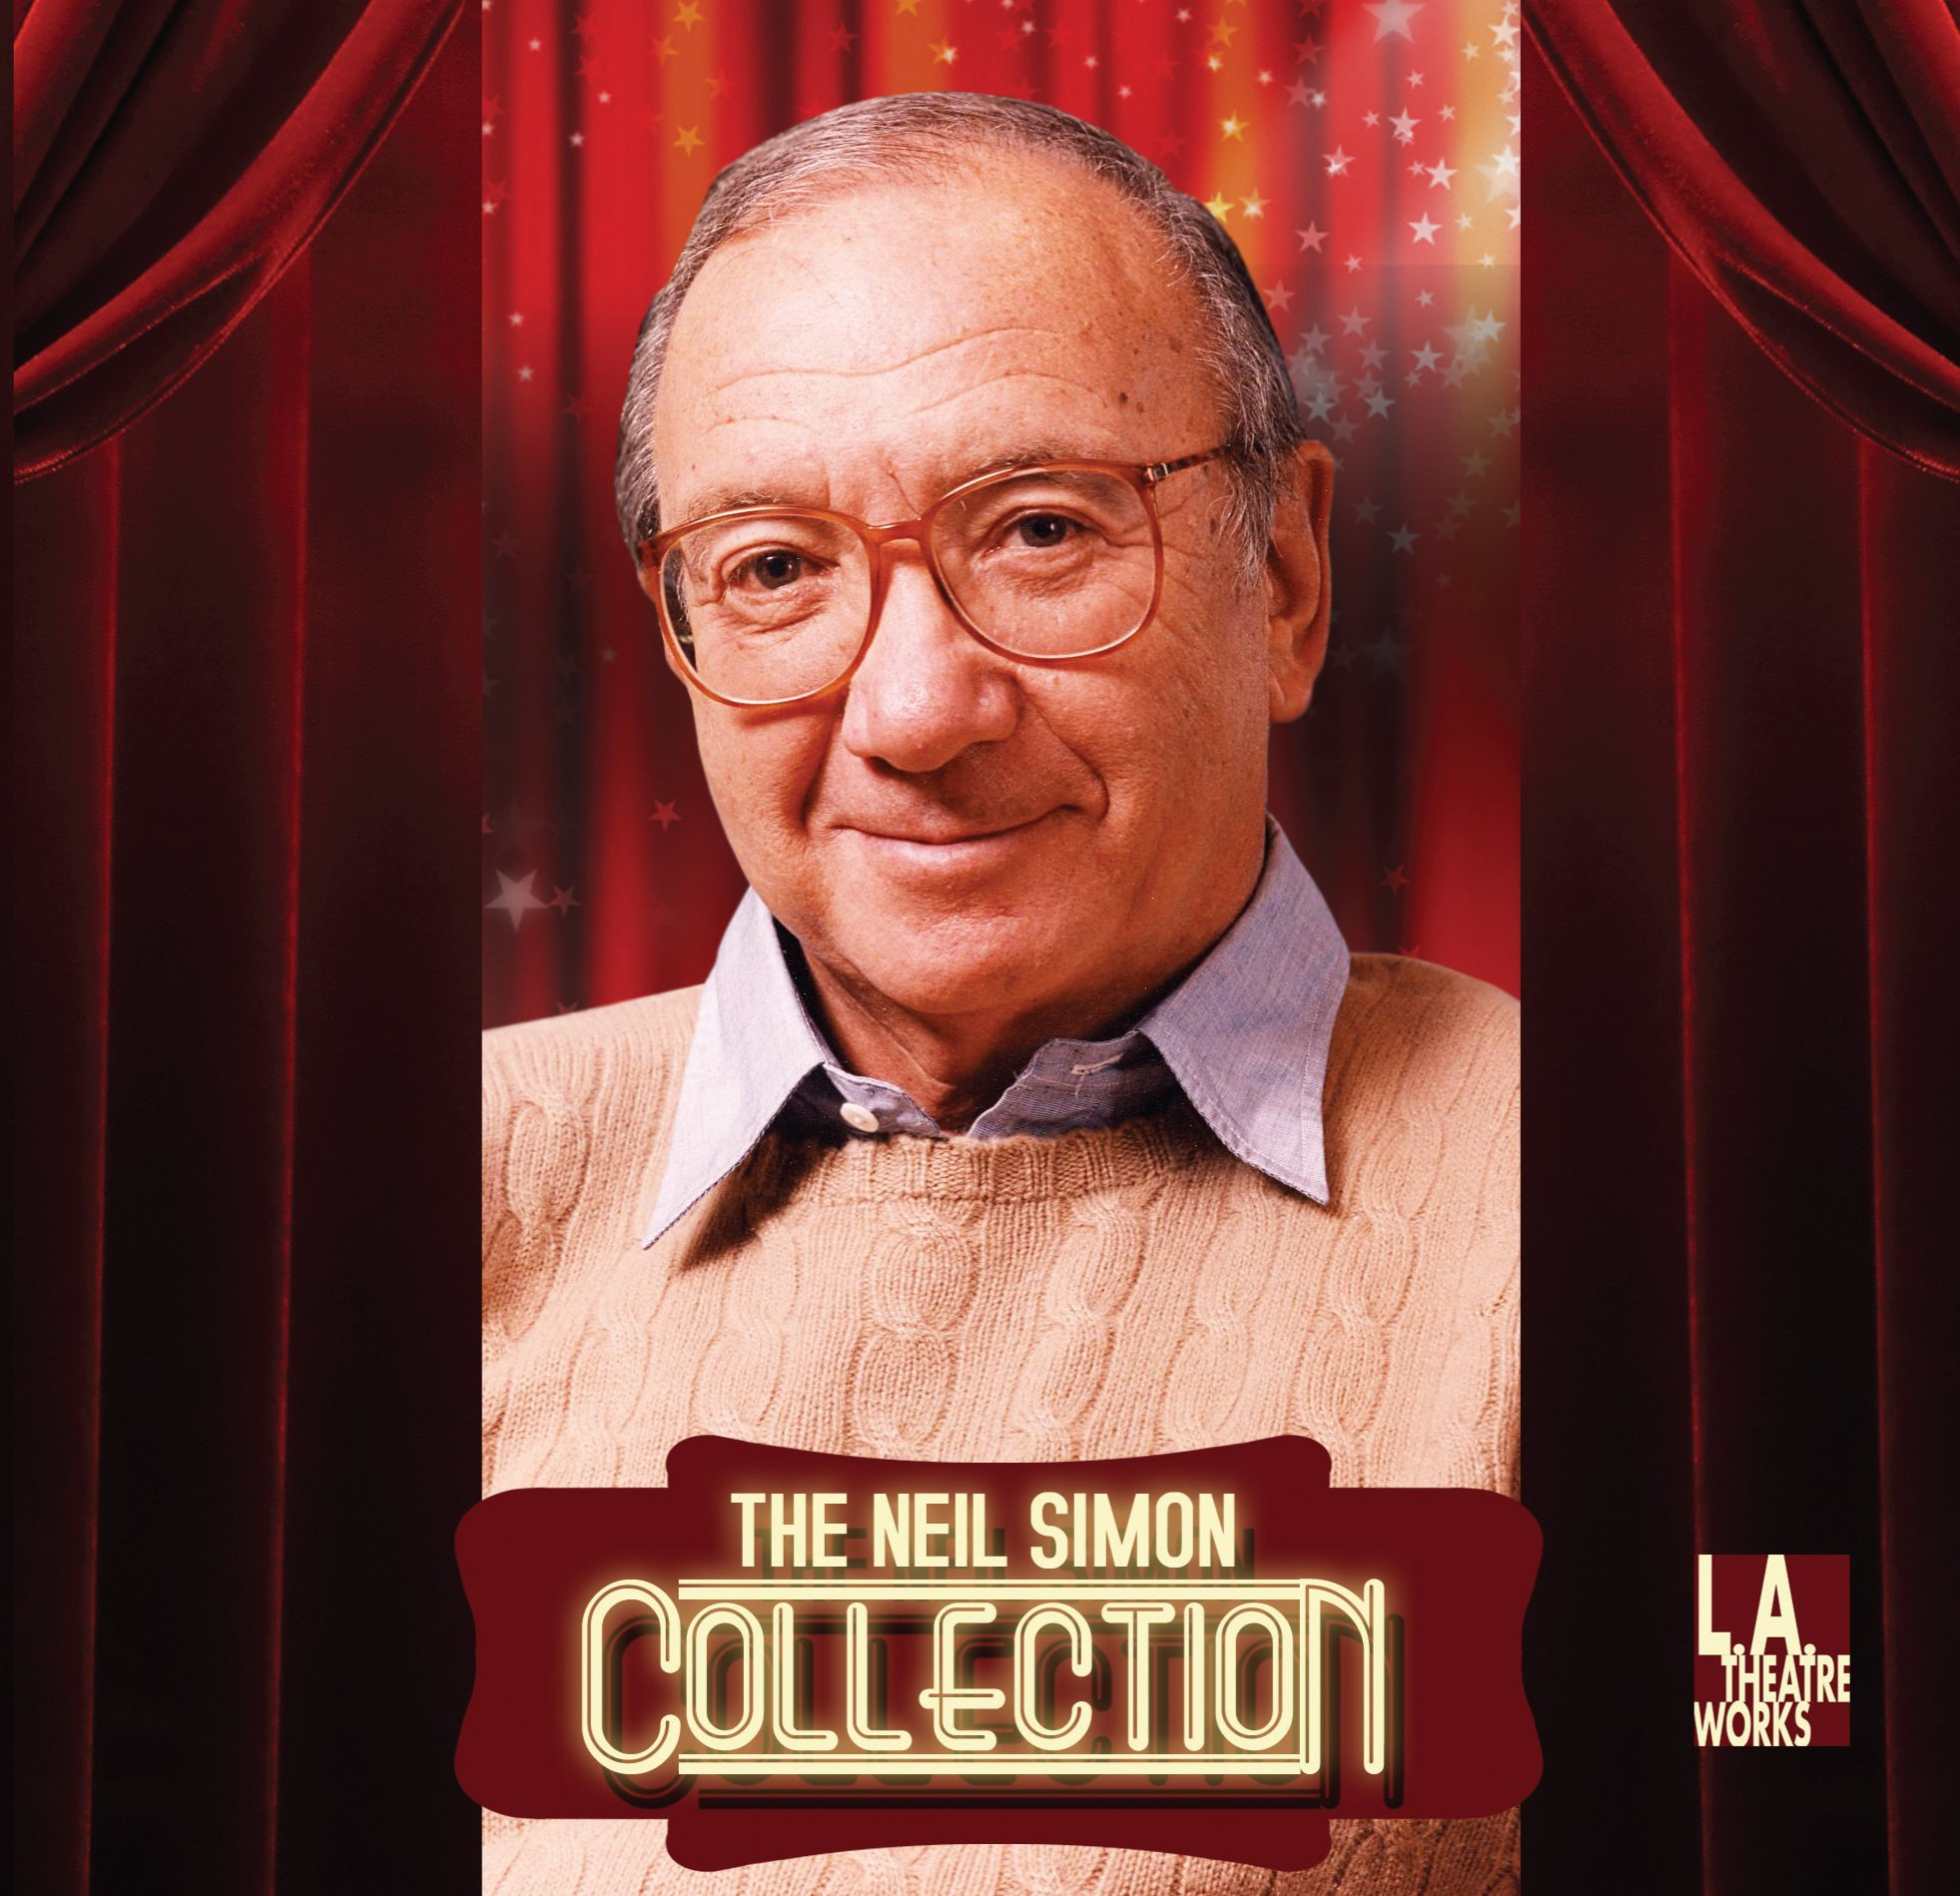 The Neil Simon Collection (Library Edition Audio CDs) by L.A. Theatre Works